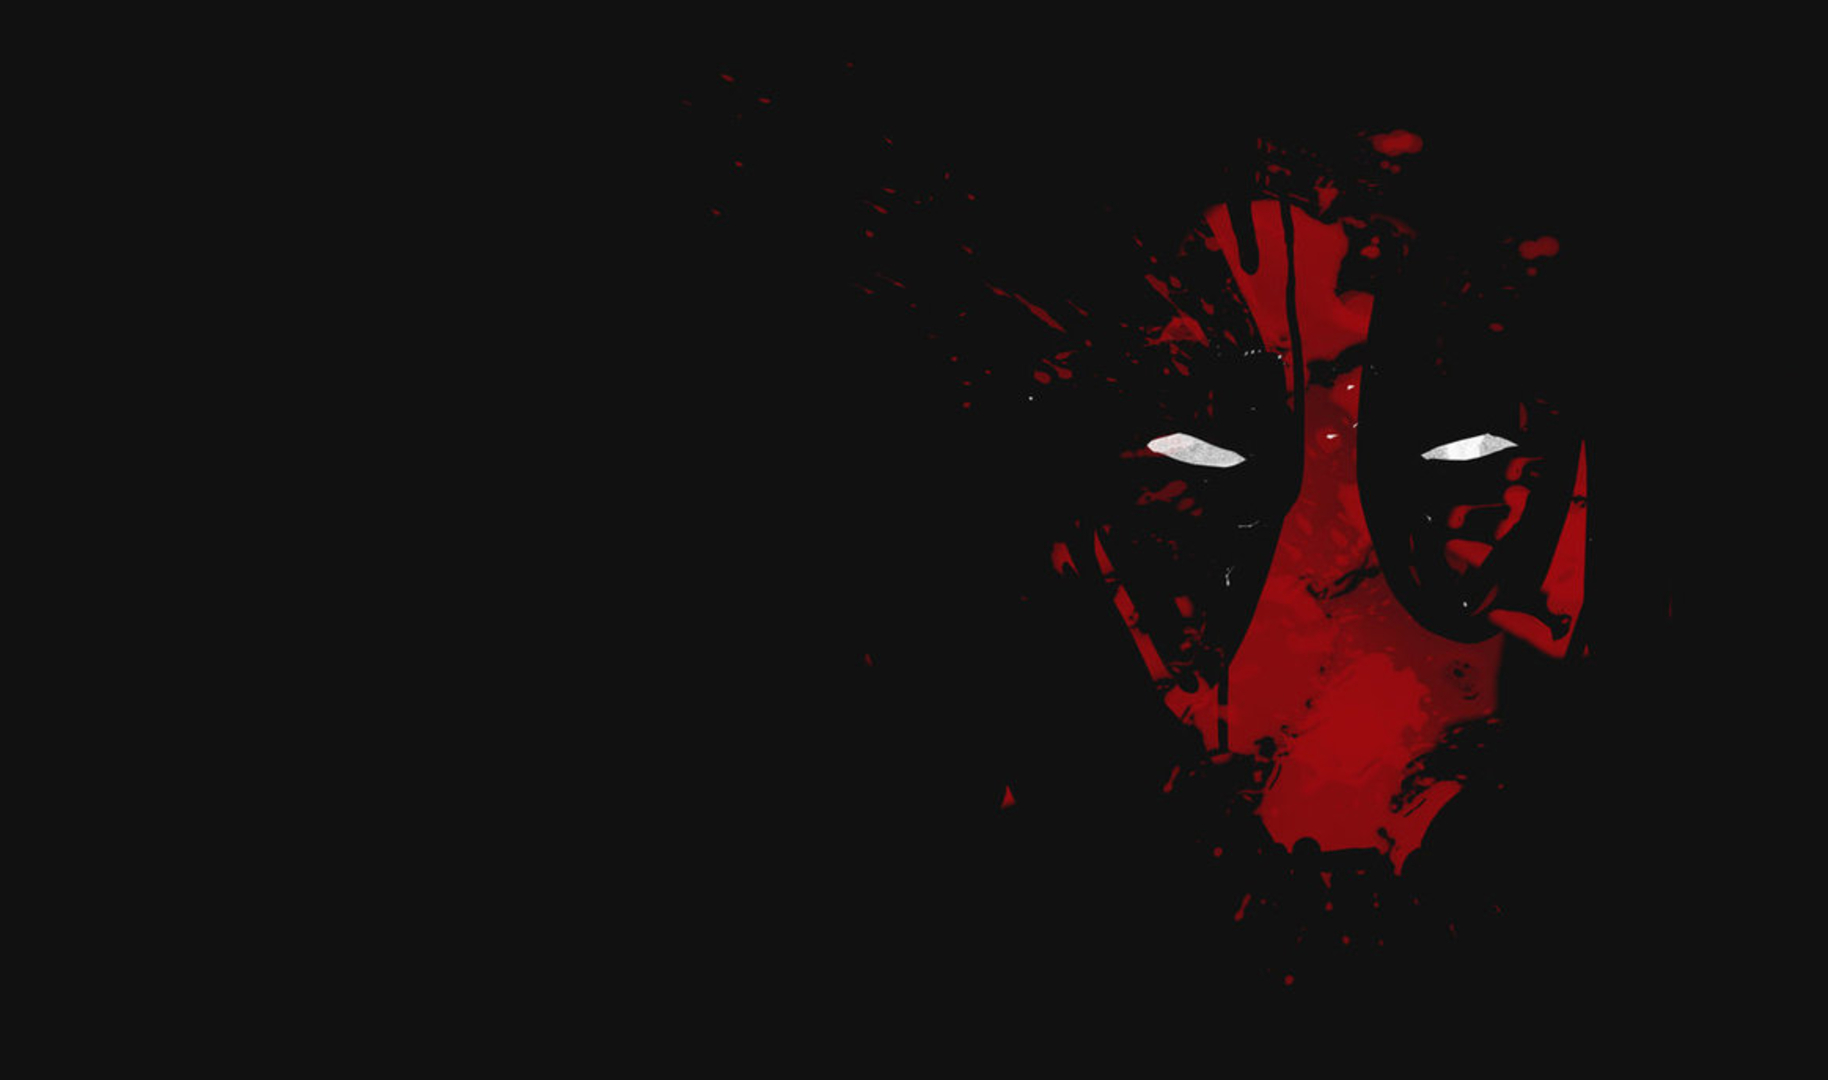 Deadpool-Game-Deadpool-Art-×1080-wallpaper-wp3604711